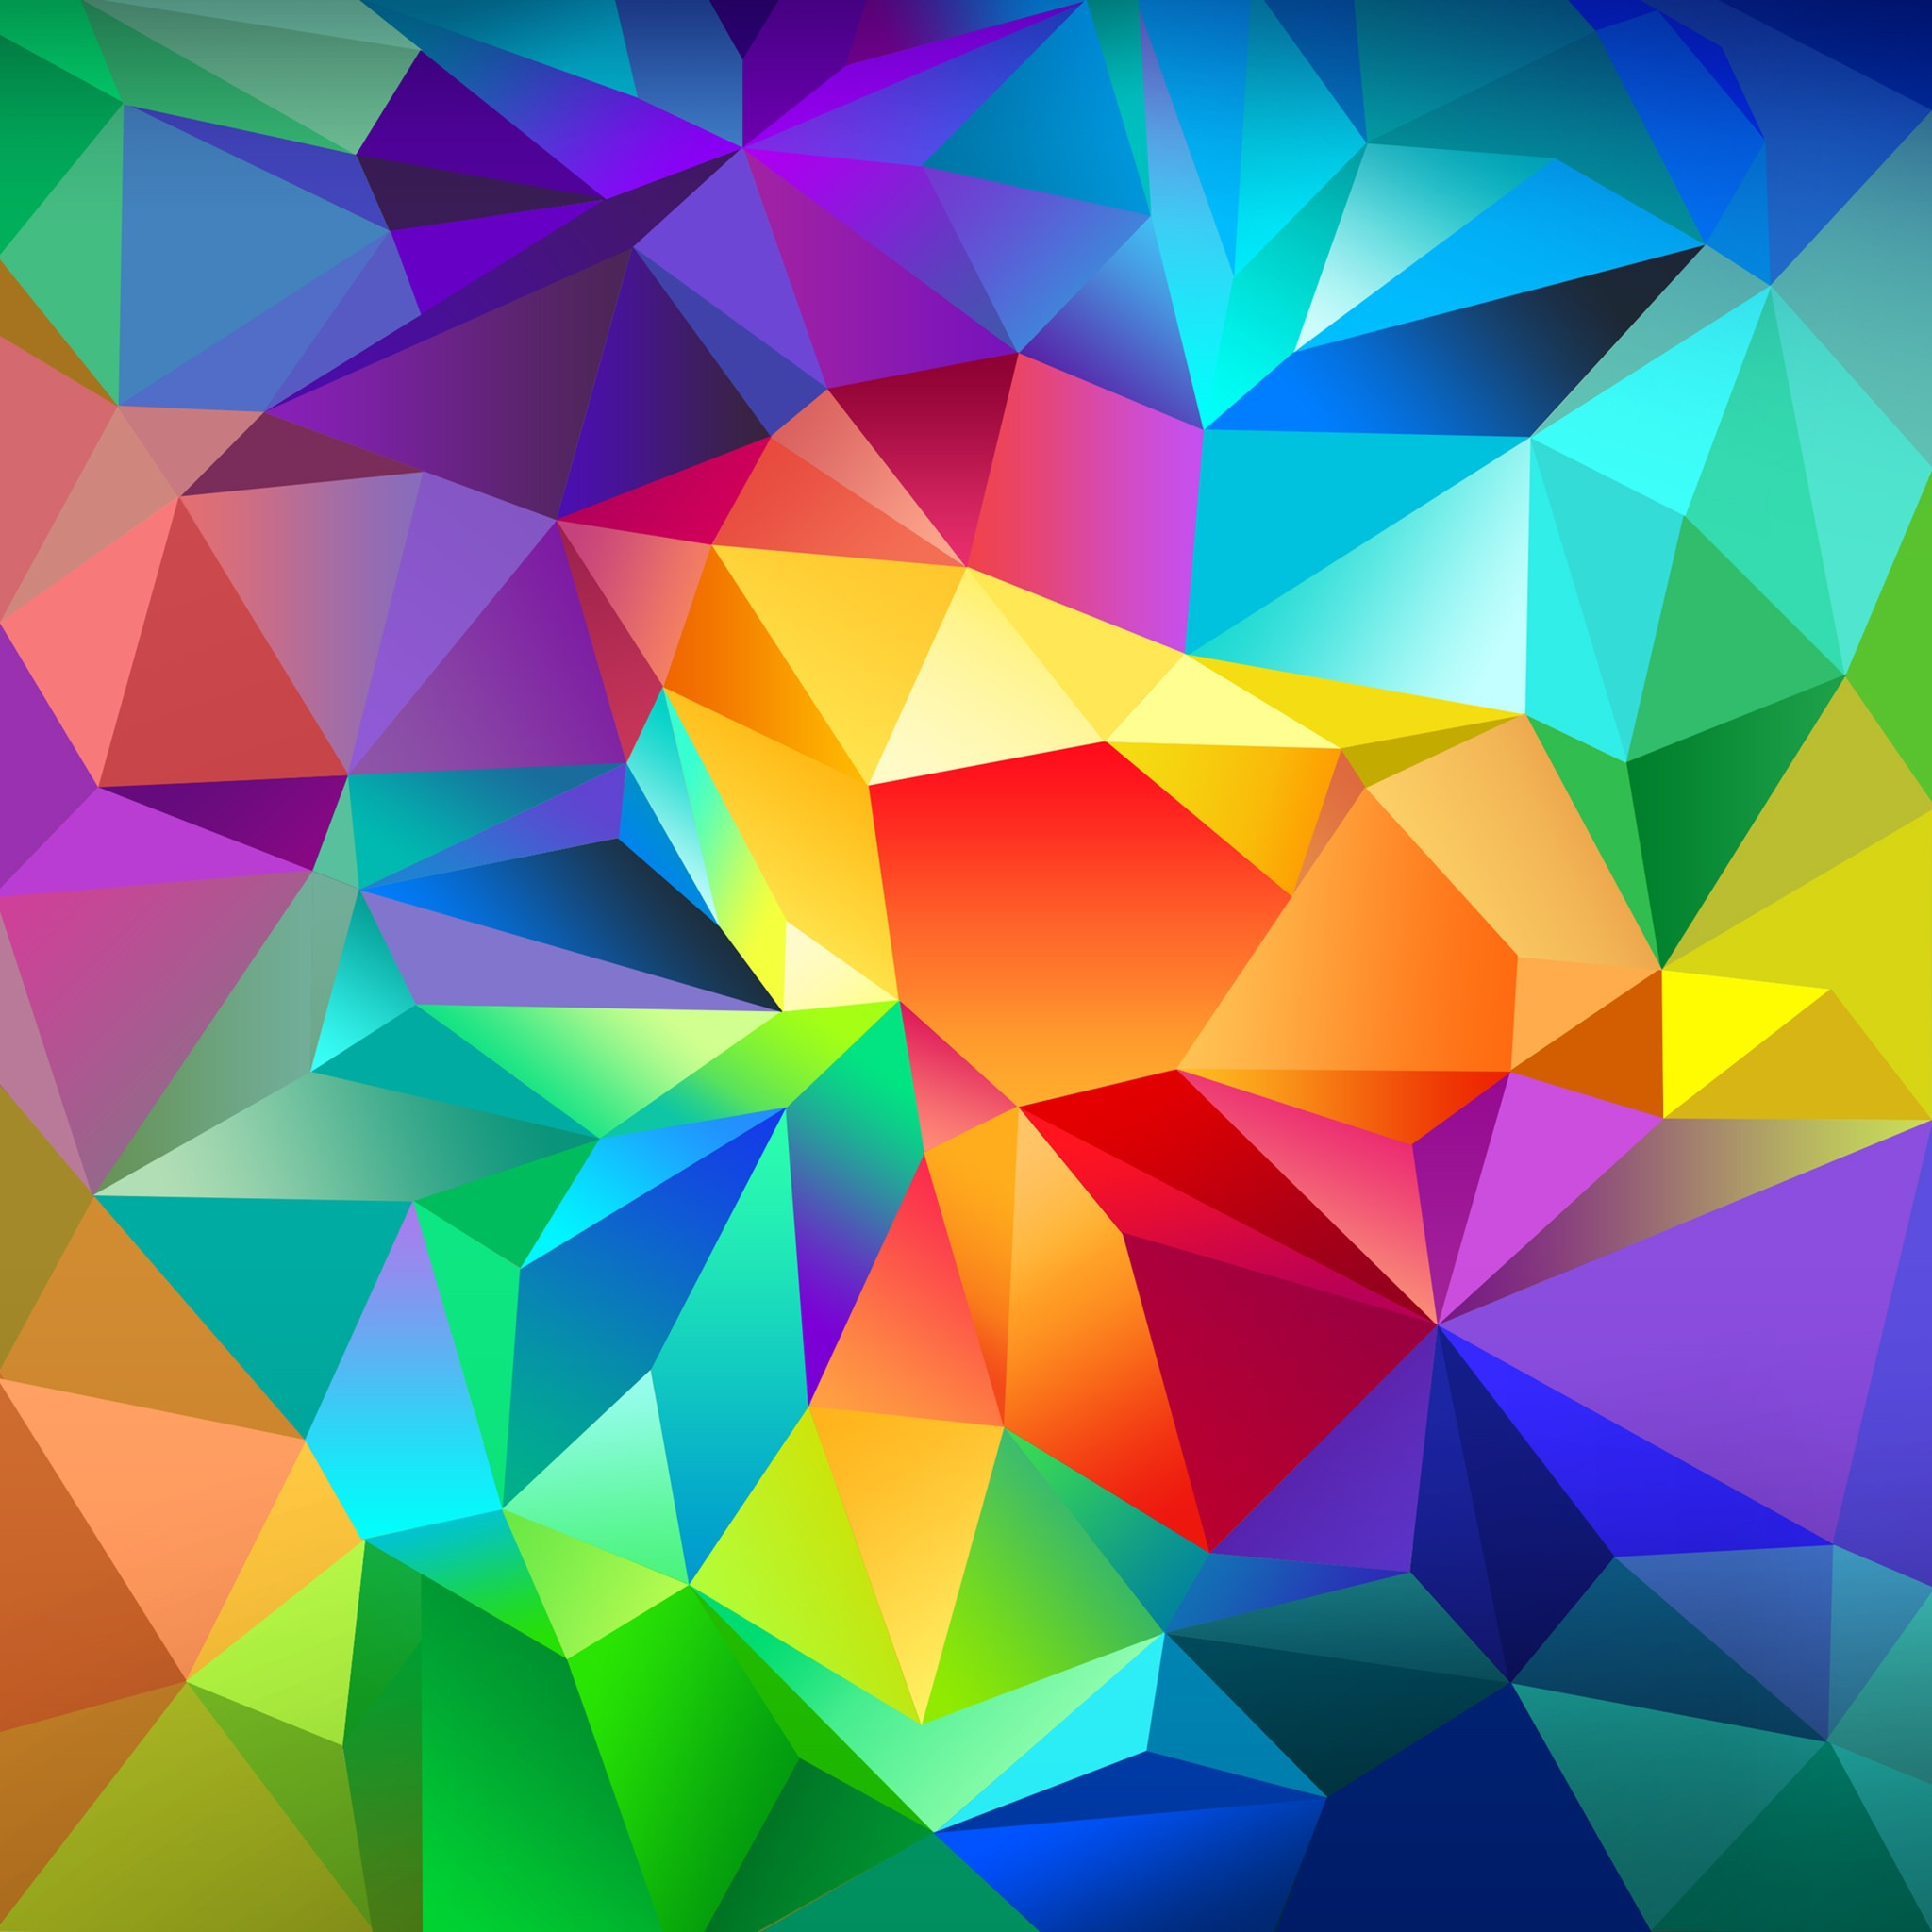 wallpaper polygon 4k hd wallpaper android wallpaper triangle background orange red blue pattern os 3518 hd wallpapers shouldnt be just a